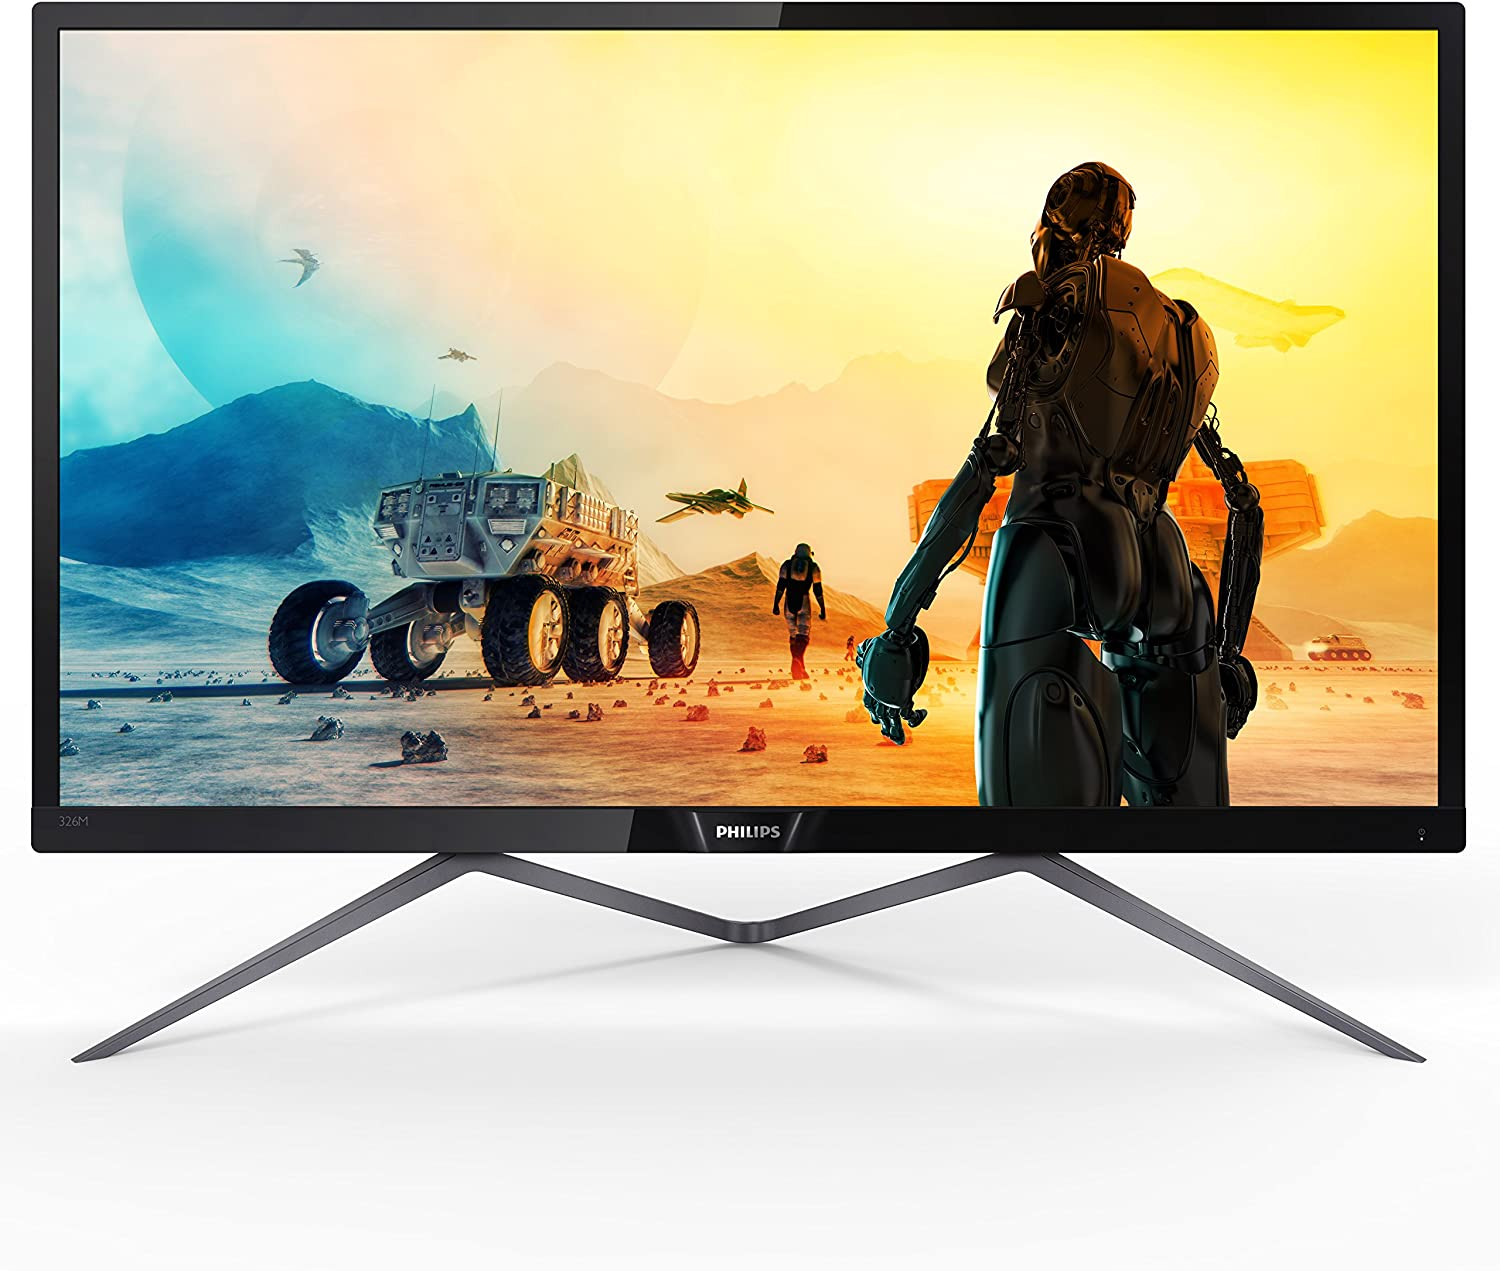 best 4k gaming monitor for xbox one x